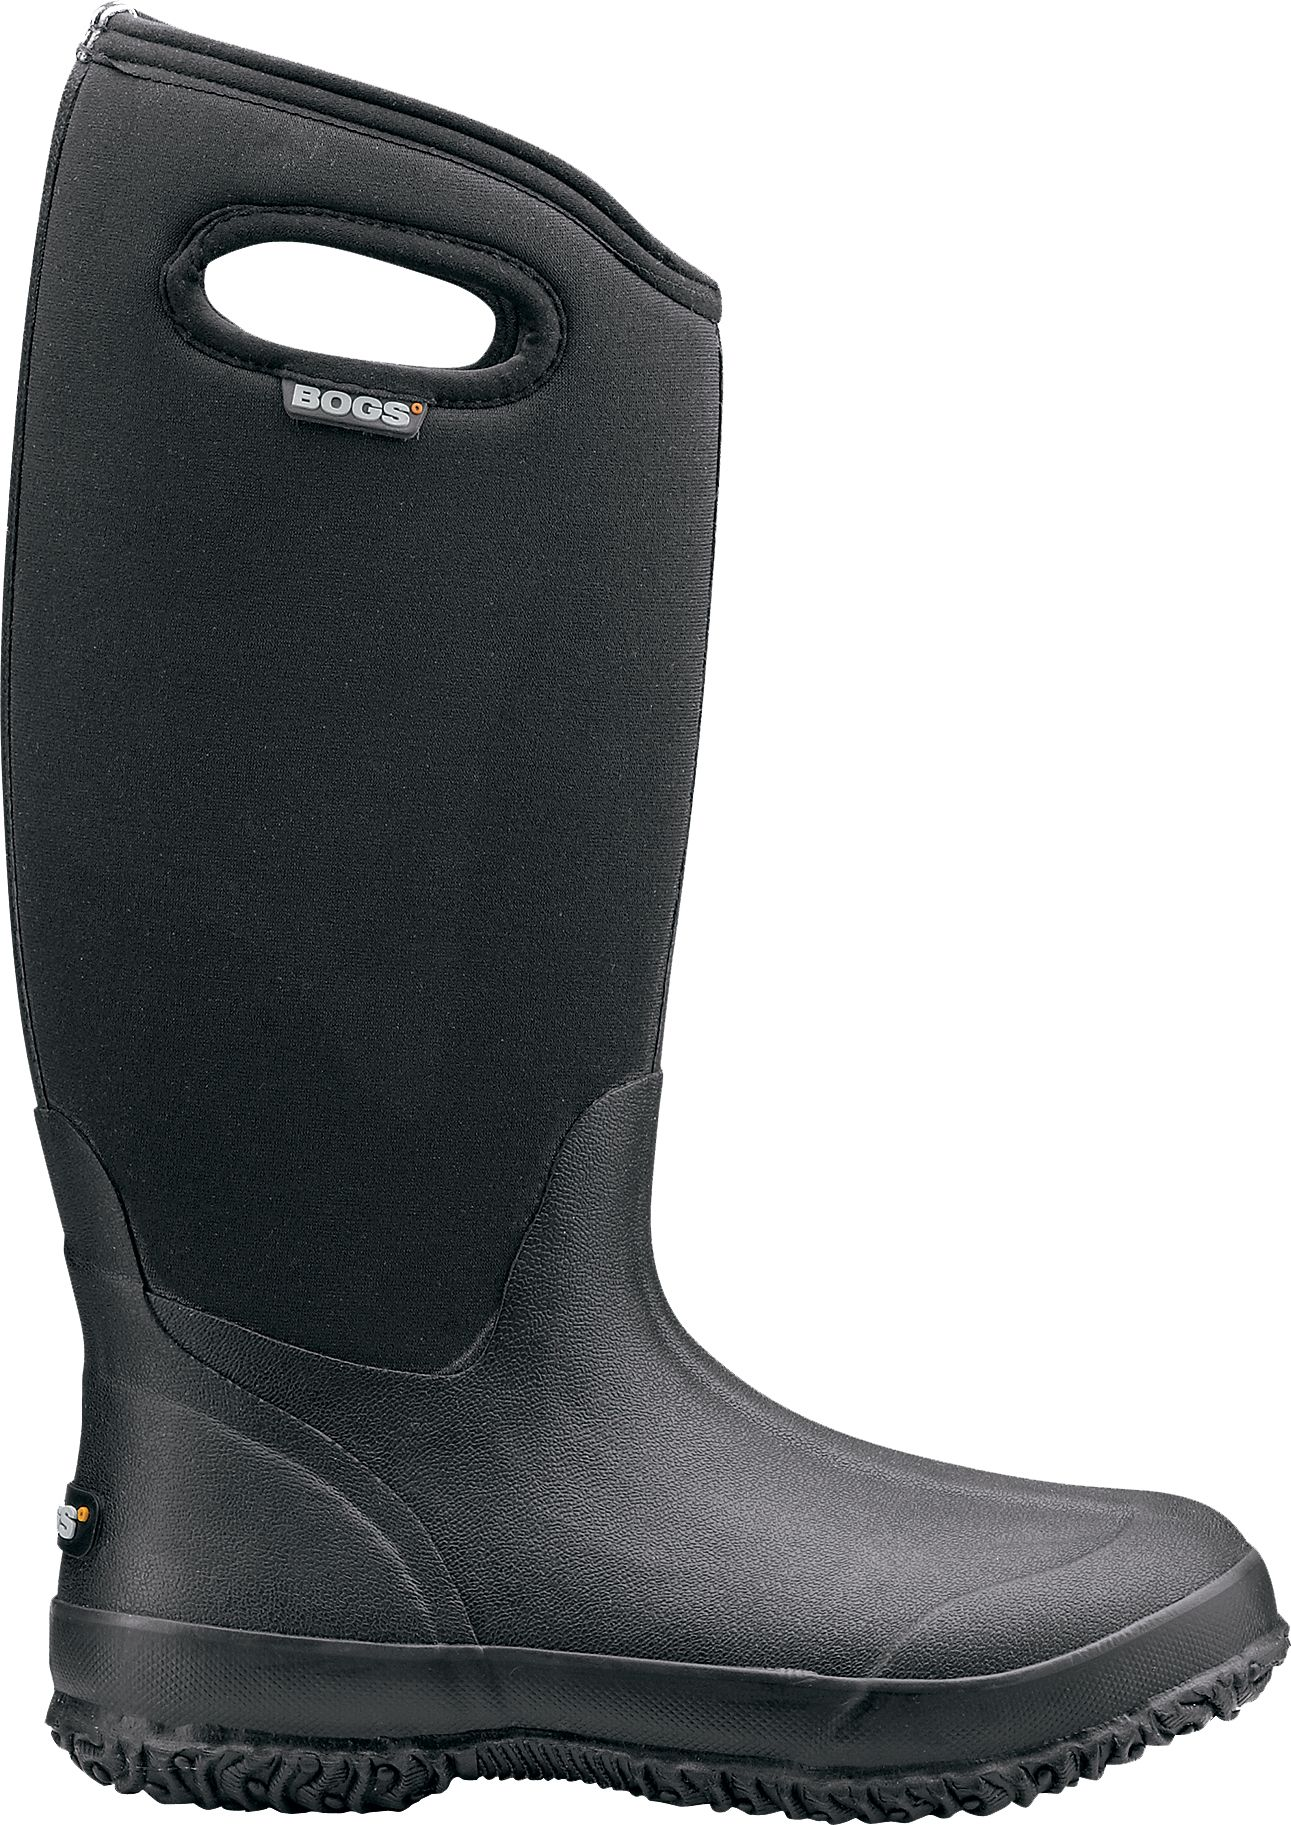 BOGS Women's Classic High Wide Calf Insulated Rain Boots| DICK'S ...